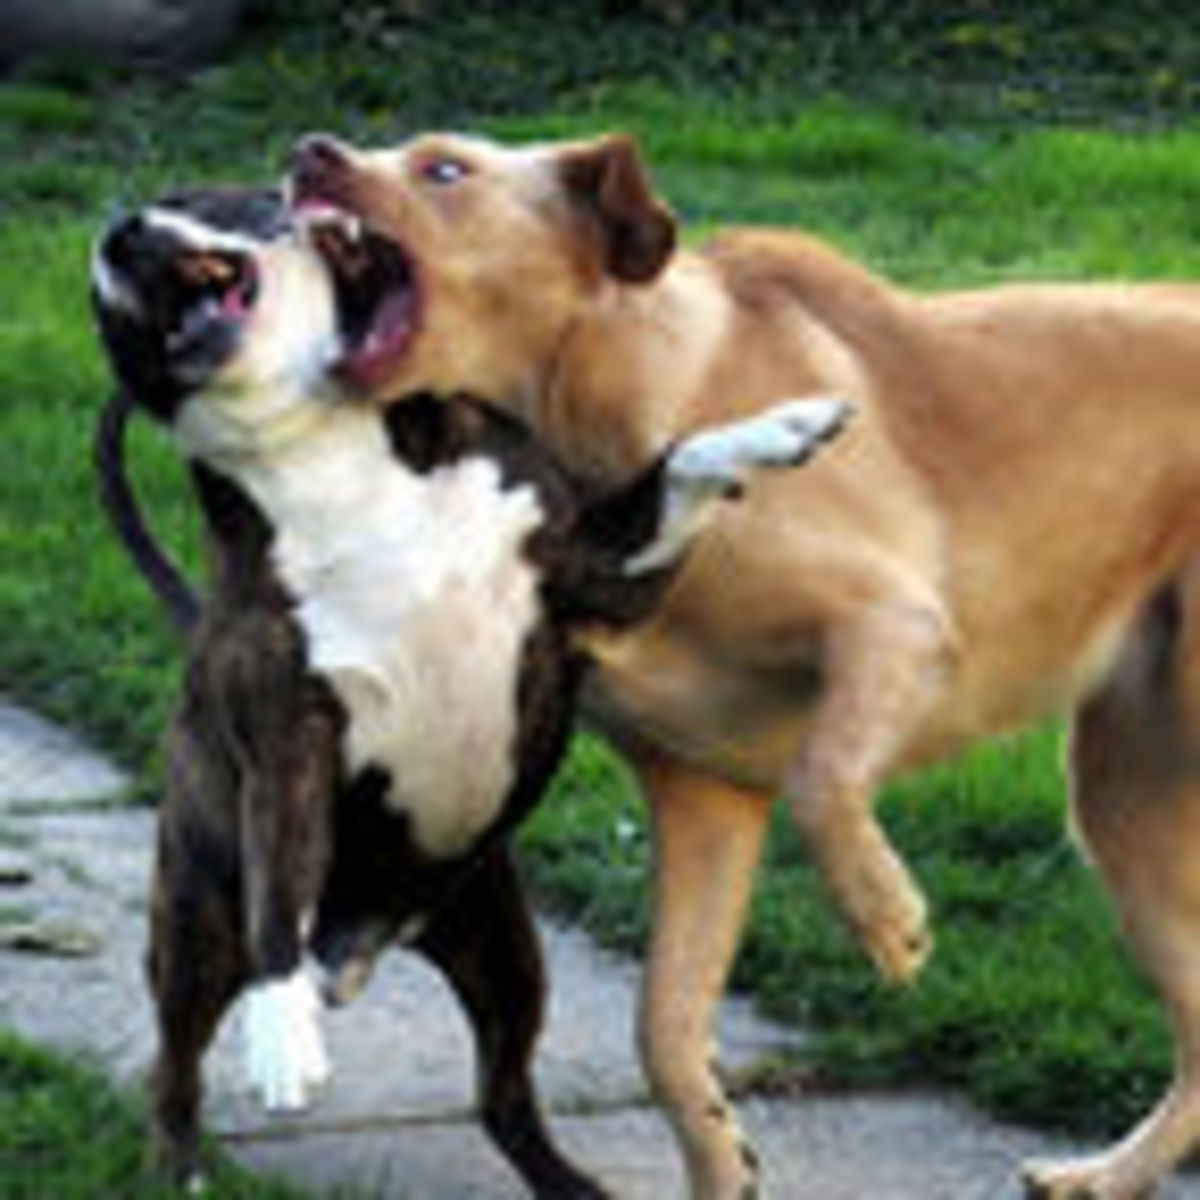 What Is the Best Way to Stop a Dog Fight? | Psychology Today